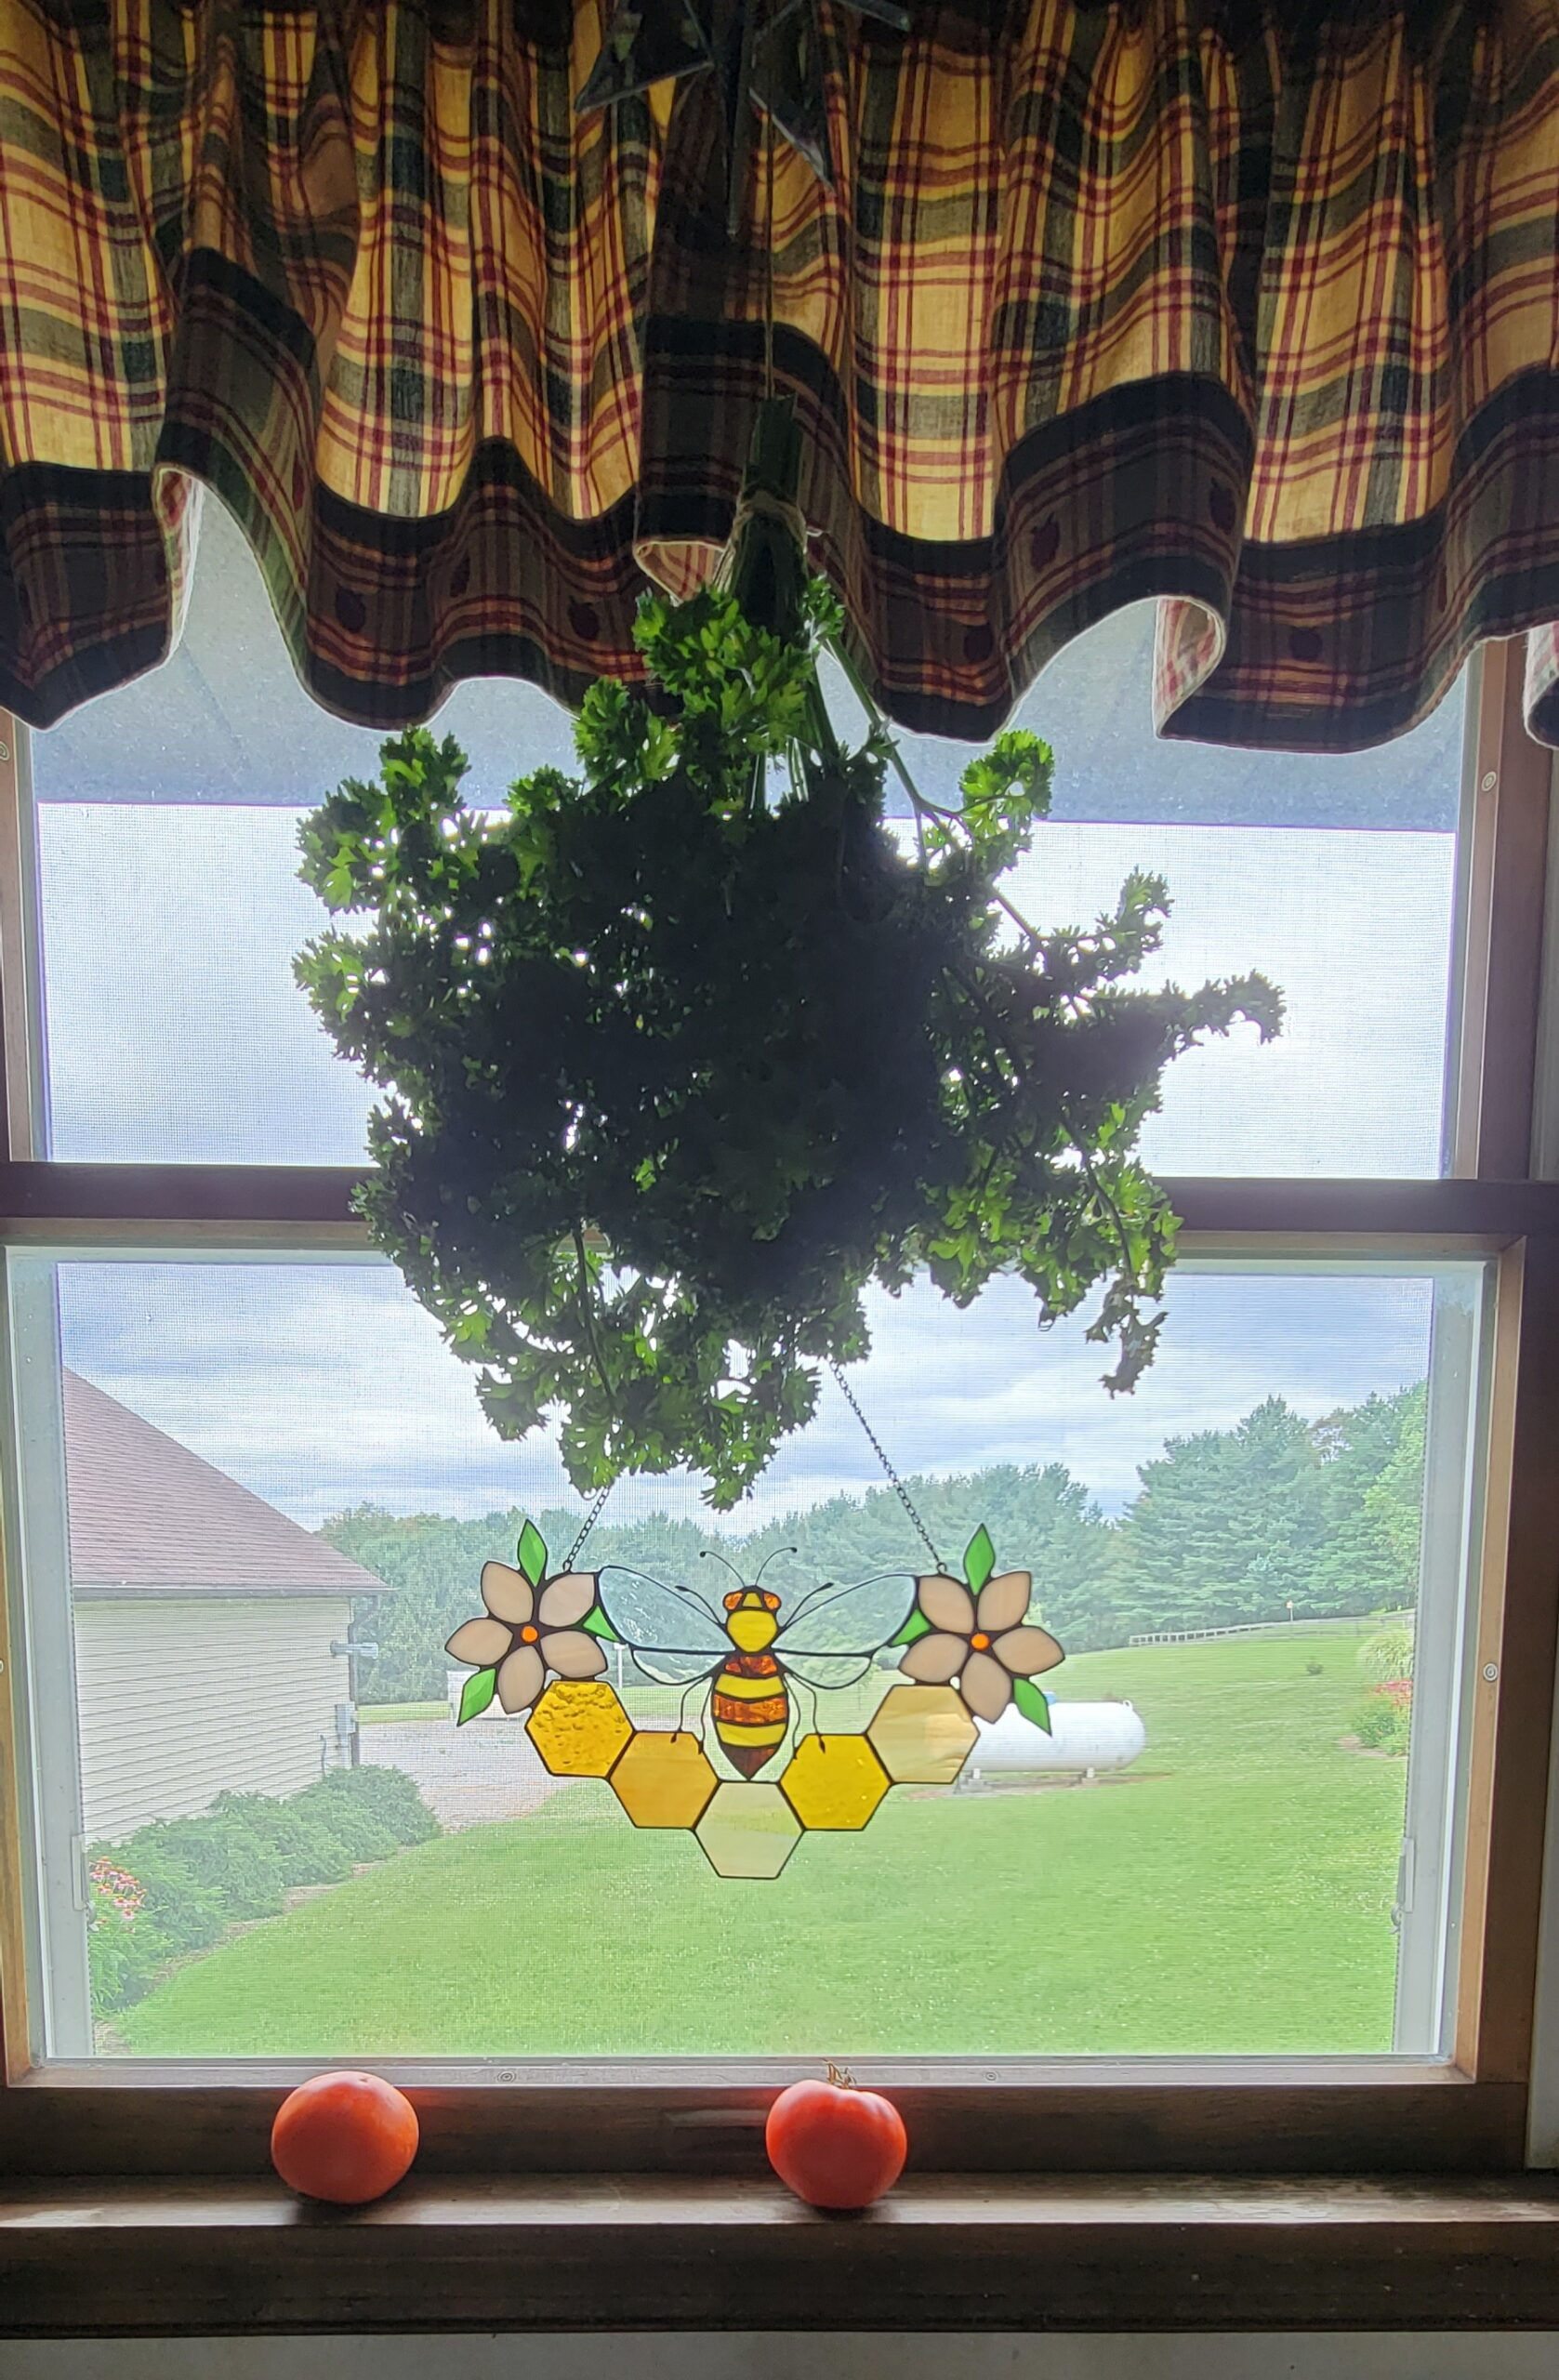 Drying Parsley In Kitchen Window